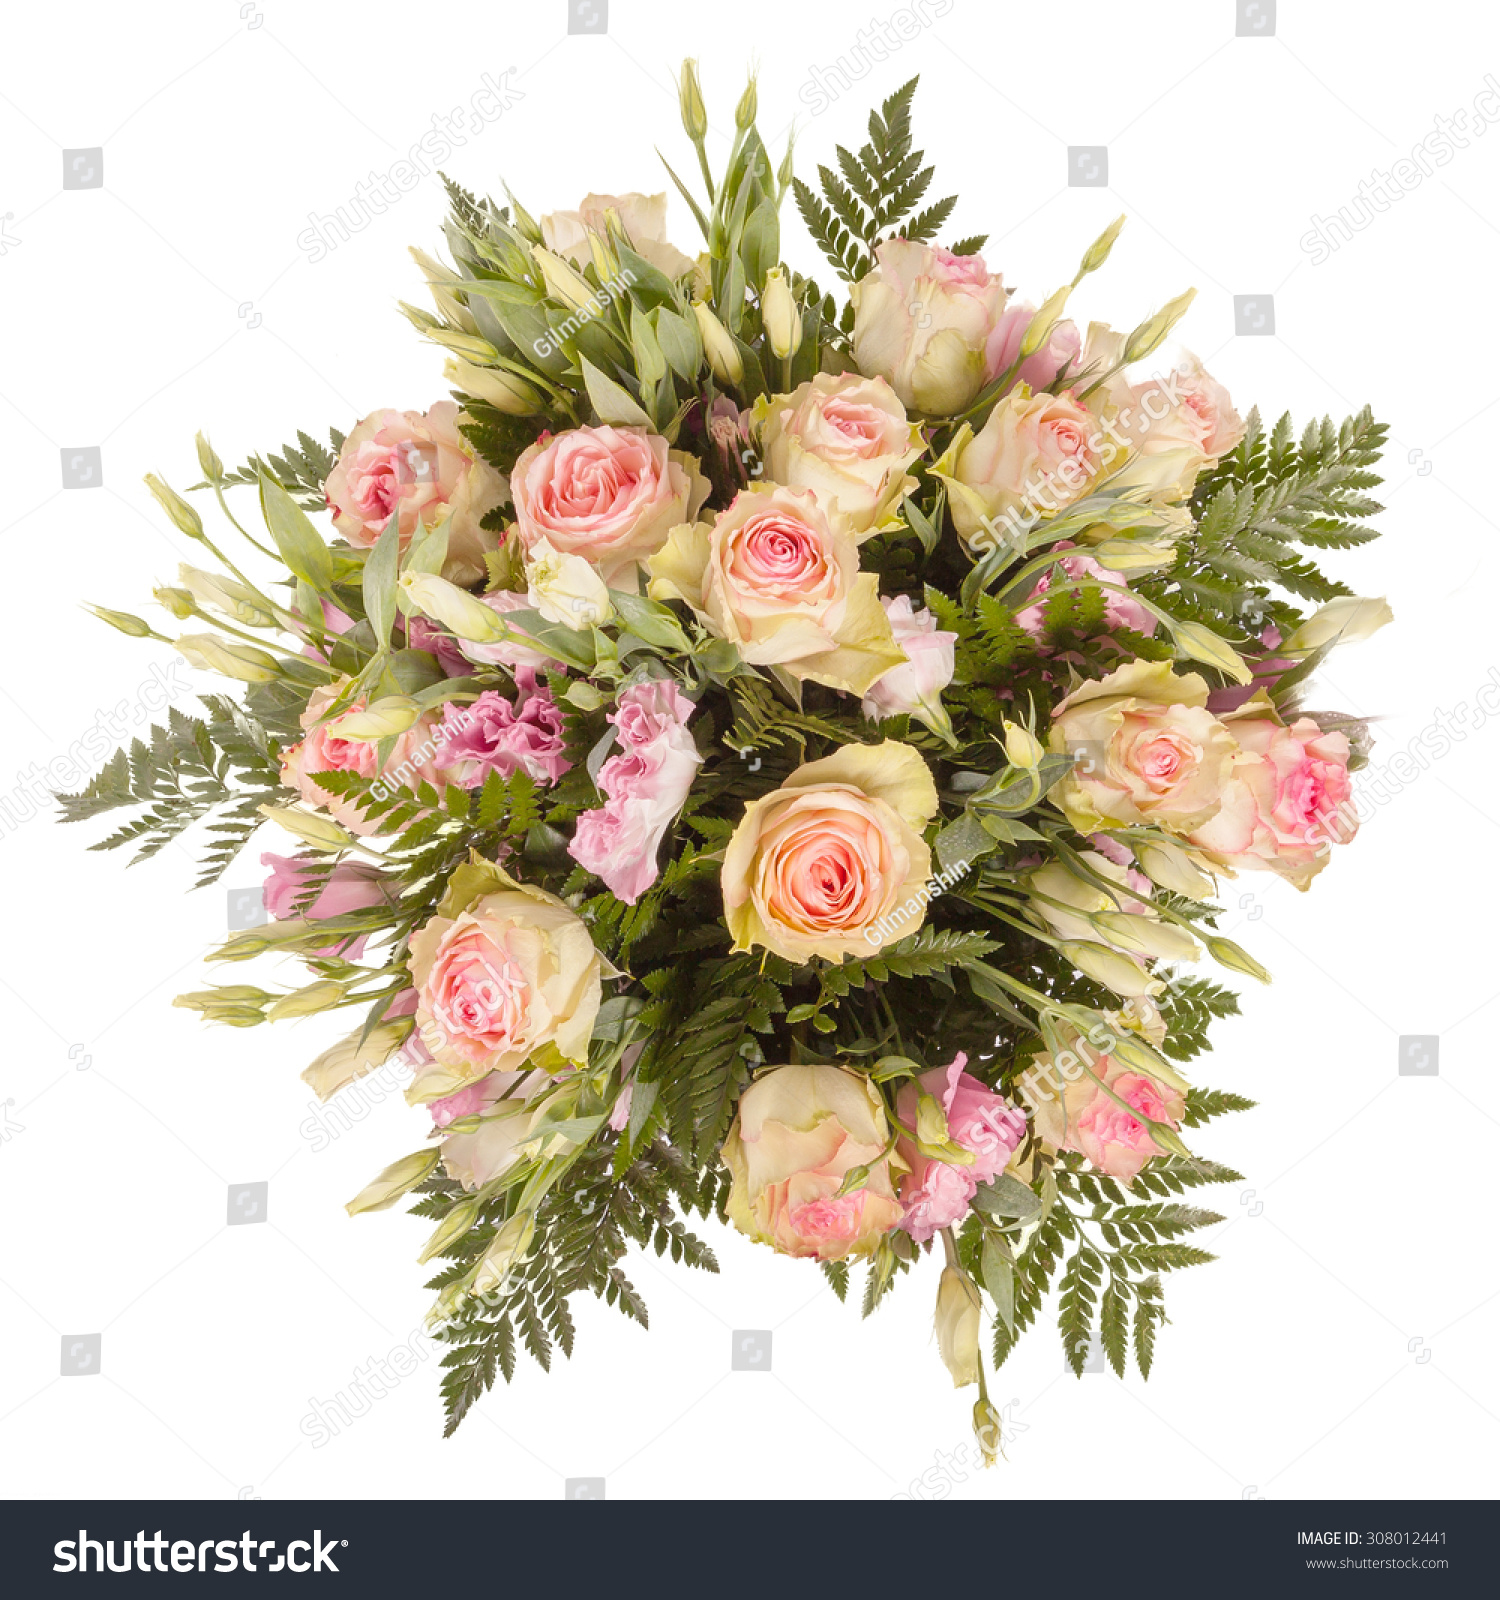 Royalty Free Bouquet Of Flowers Top View Isolated On 308012441